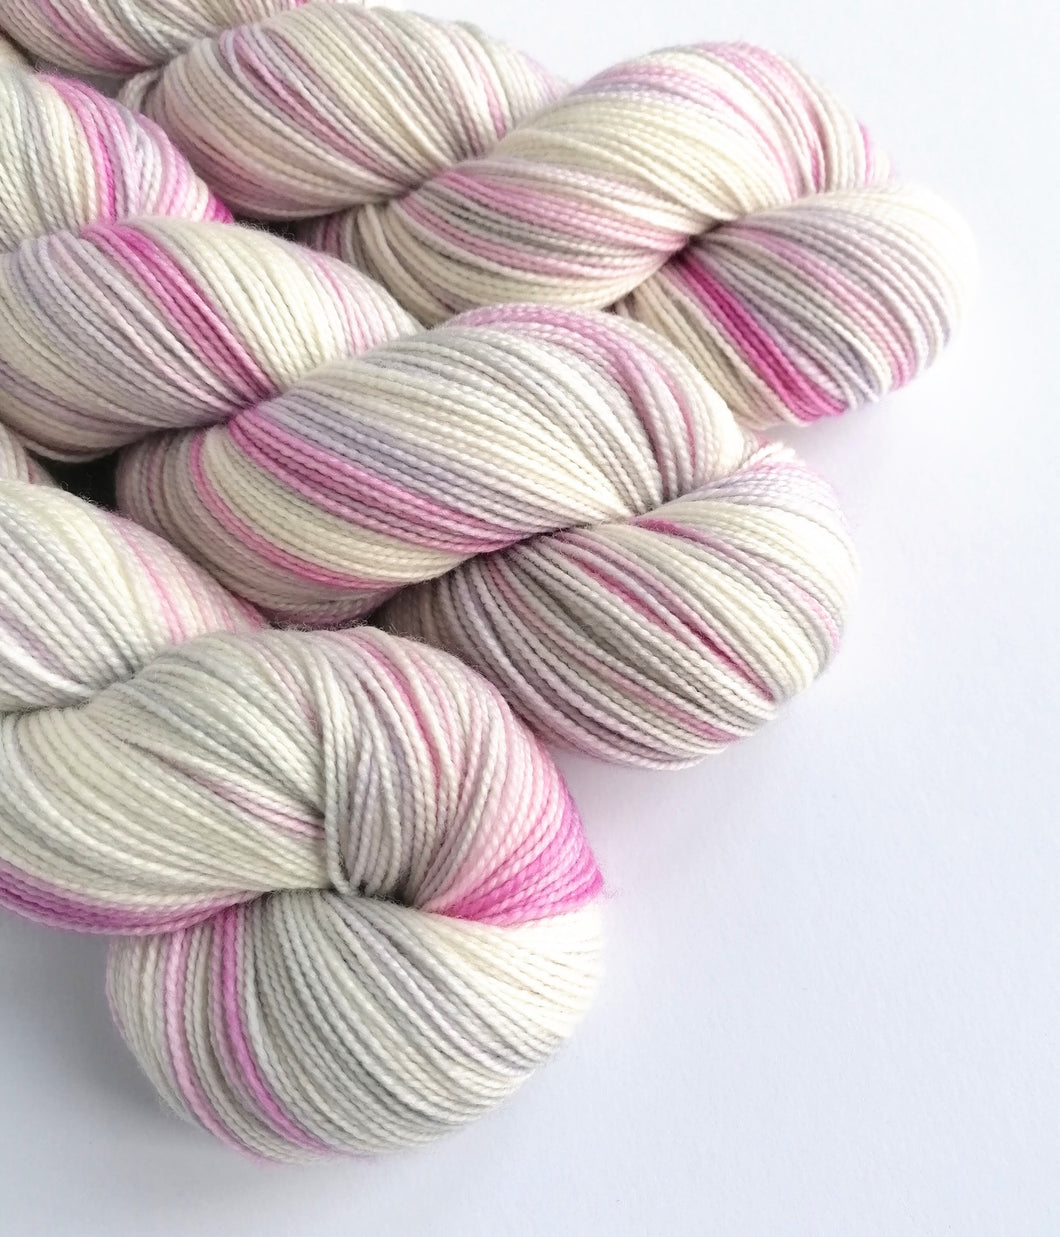 Snow Fairy on a high twist Superwash Merino/Nylon sock yarn.